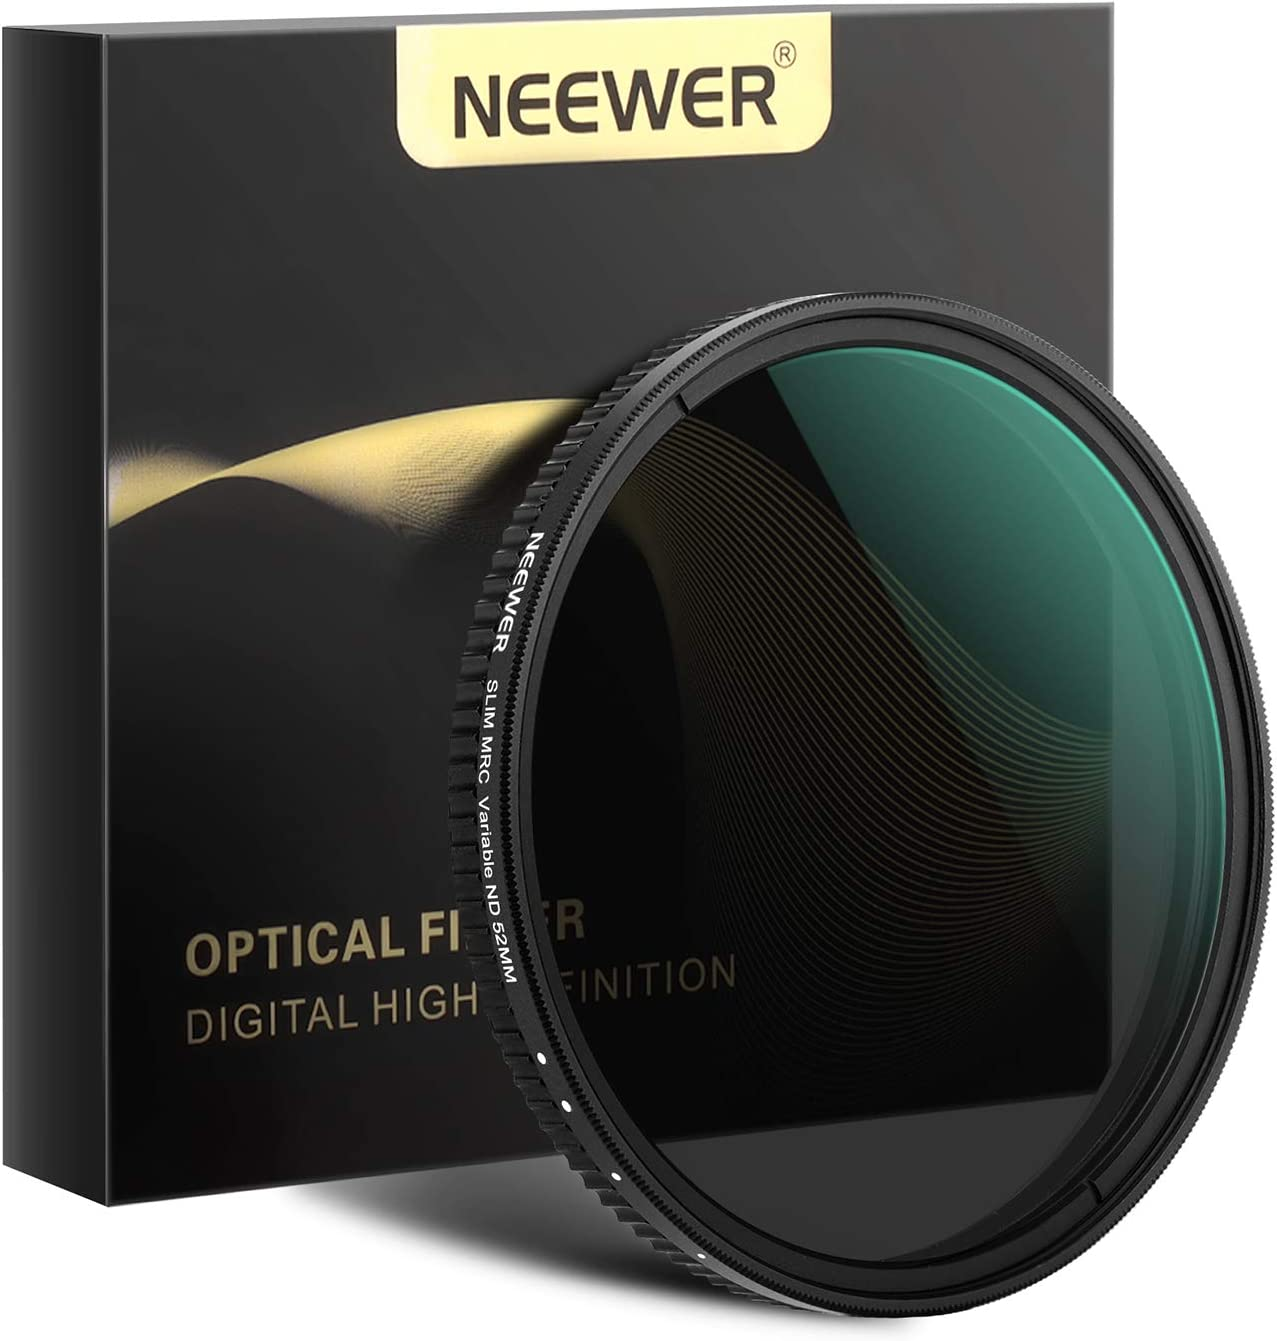 Amazon Com Neewer 52mm Variable Fader Nd Filter Neutral Density Variable Filter Nd2 To Nd32 1 5 Stop For Camera Lens No Black Cross Multilayer Coating Ultra Thin Frame Design Camera Photo